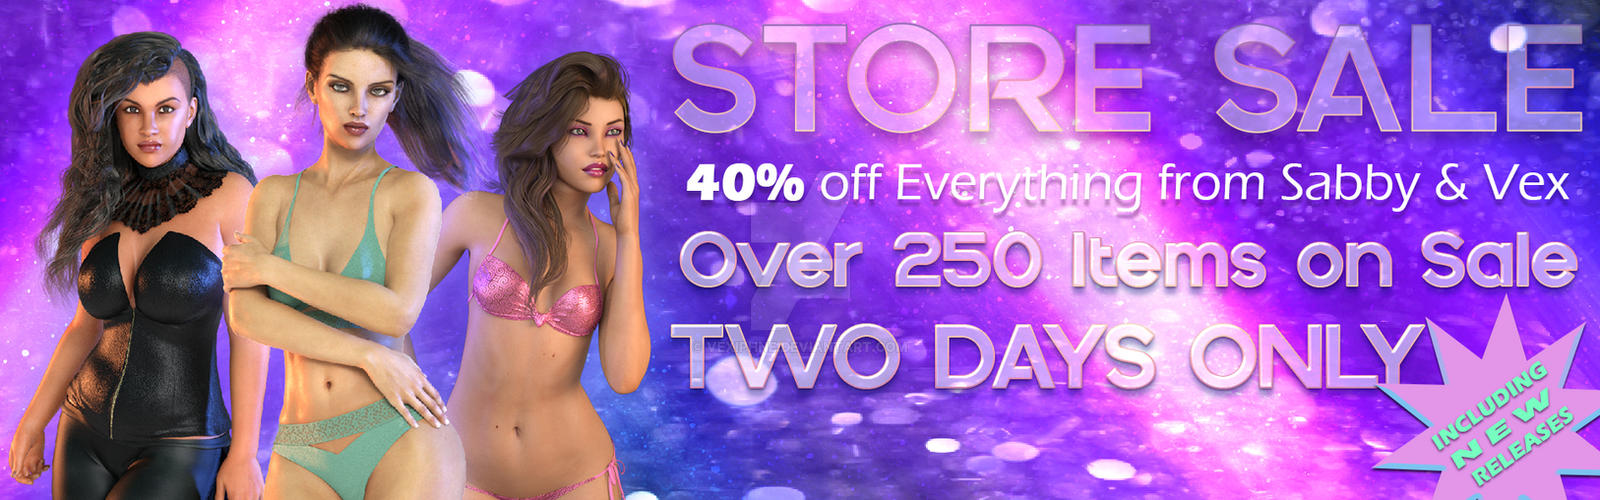 Store Sale @ Renderosity - EVERYTHING 40% Off by vexiphne